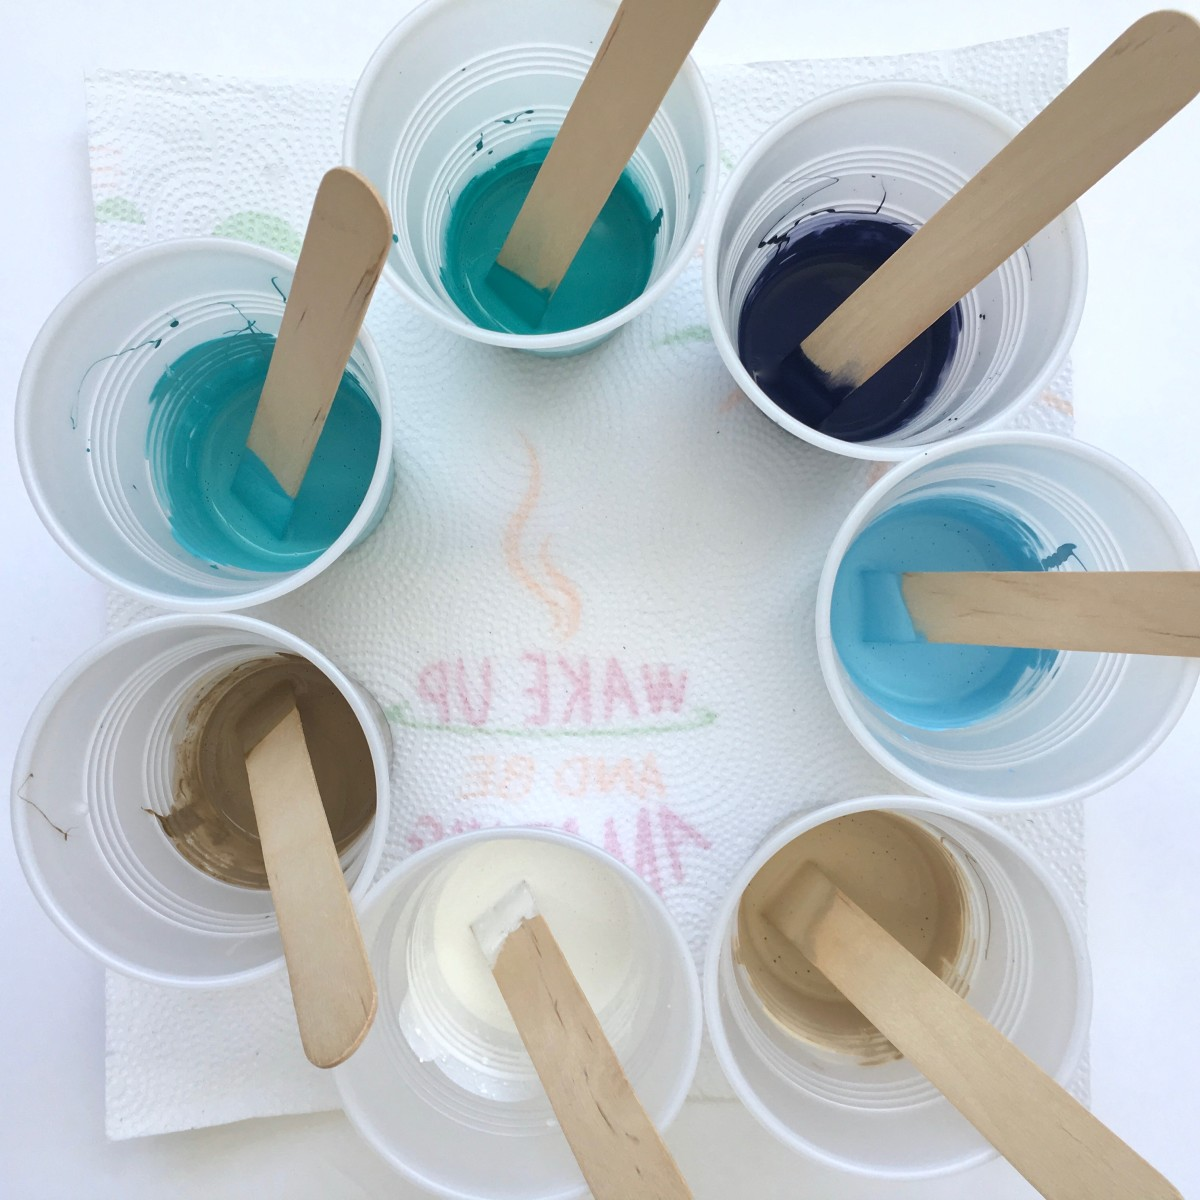 Cups of paint with glue